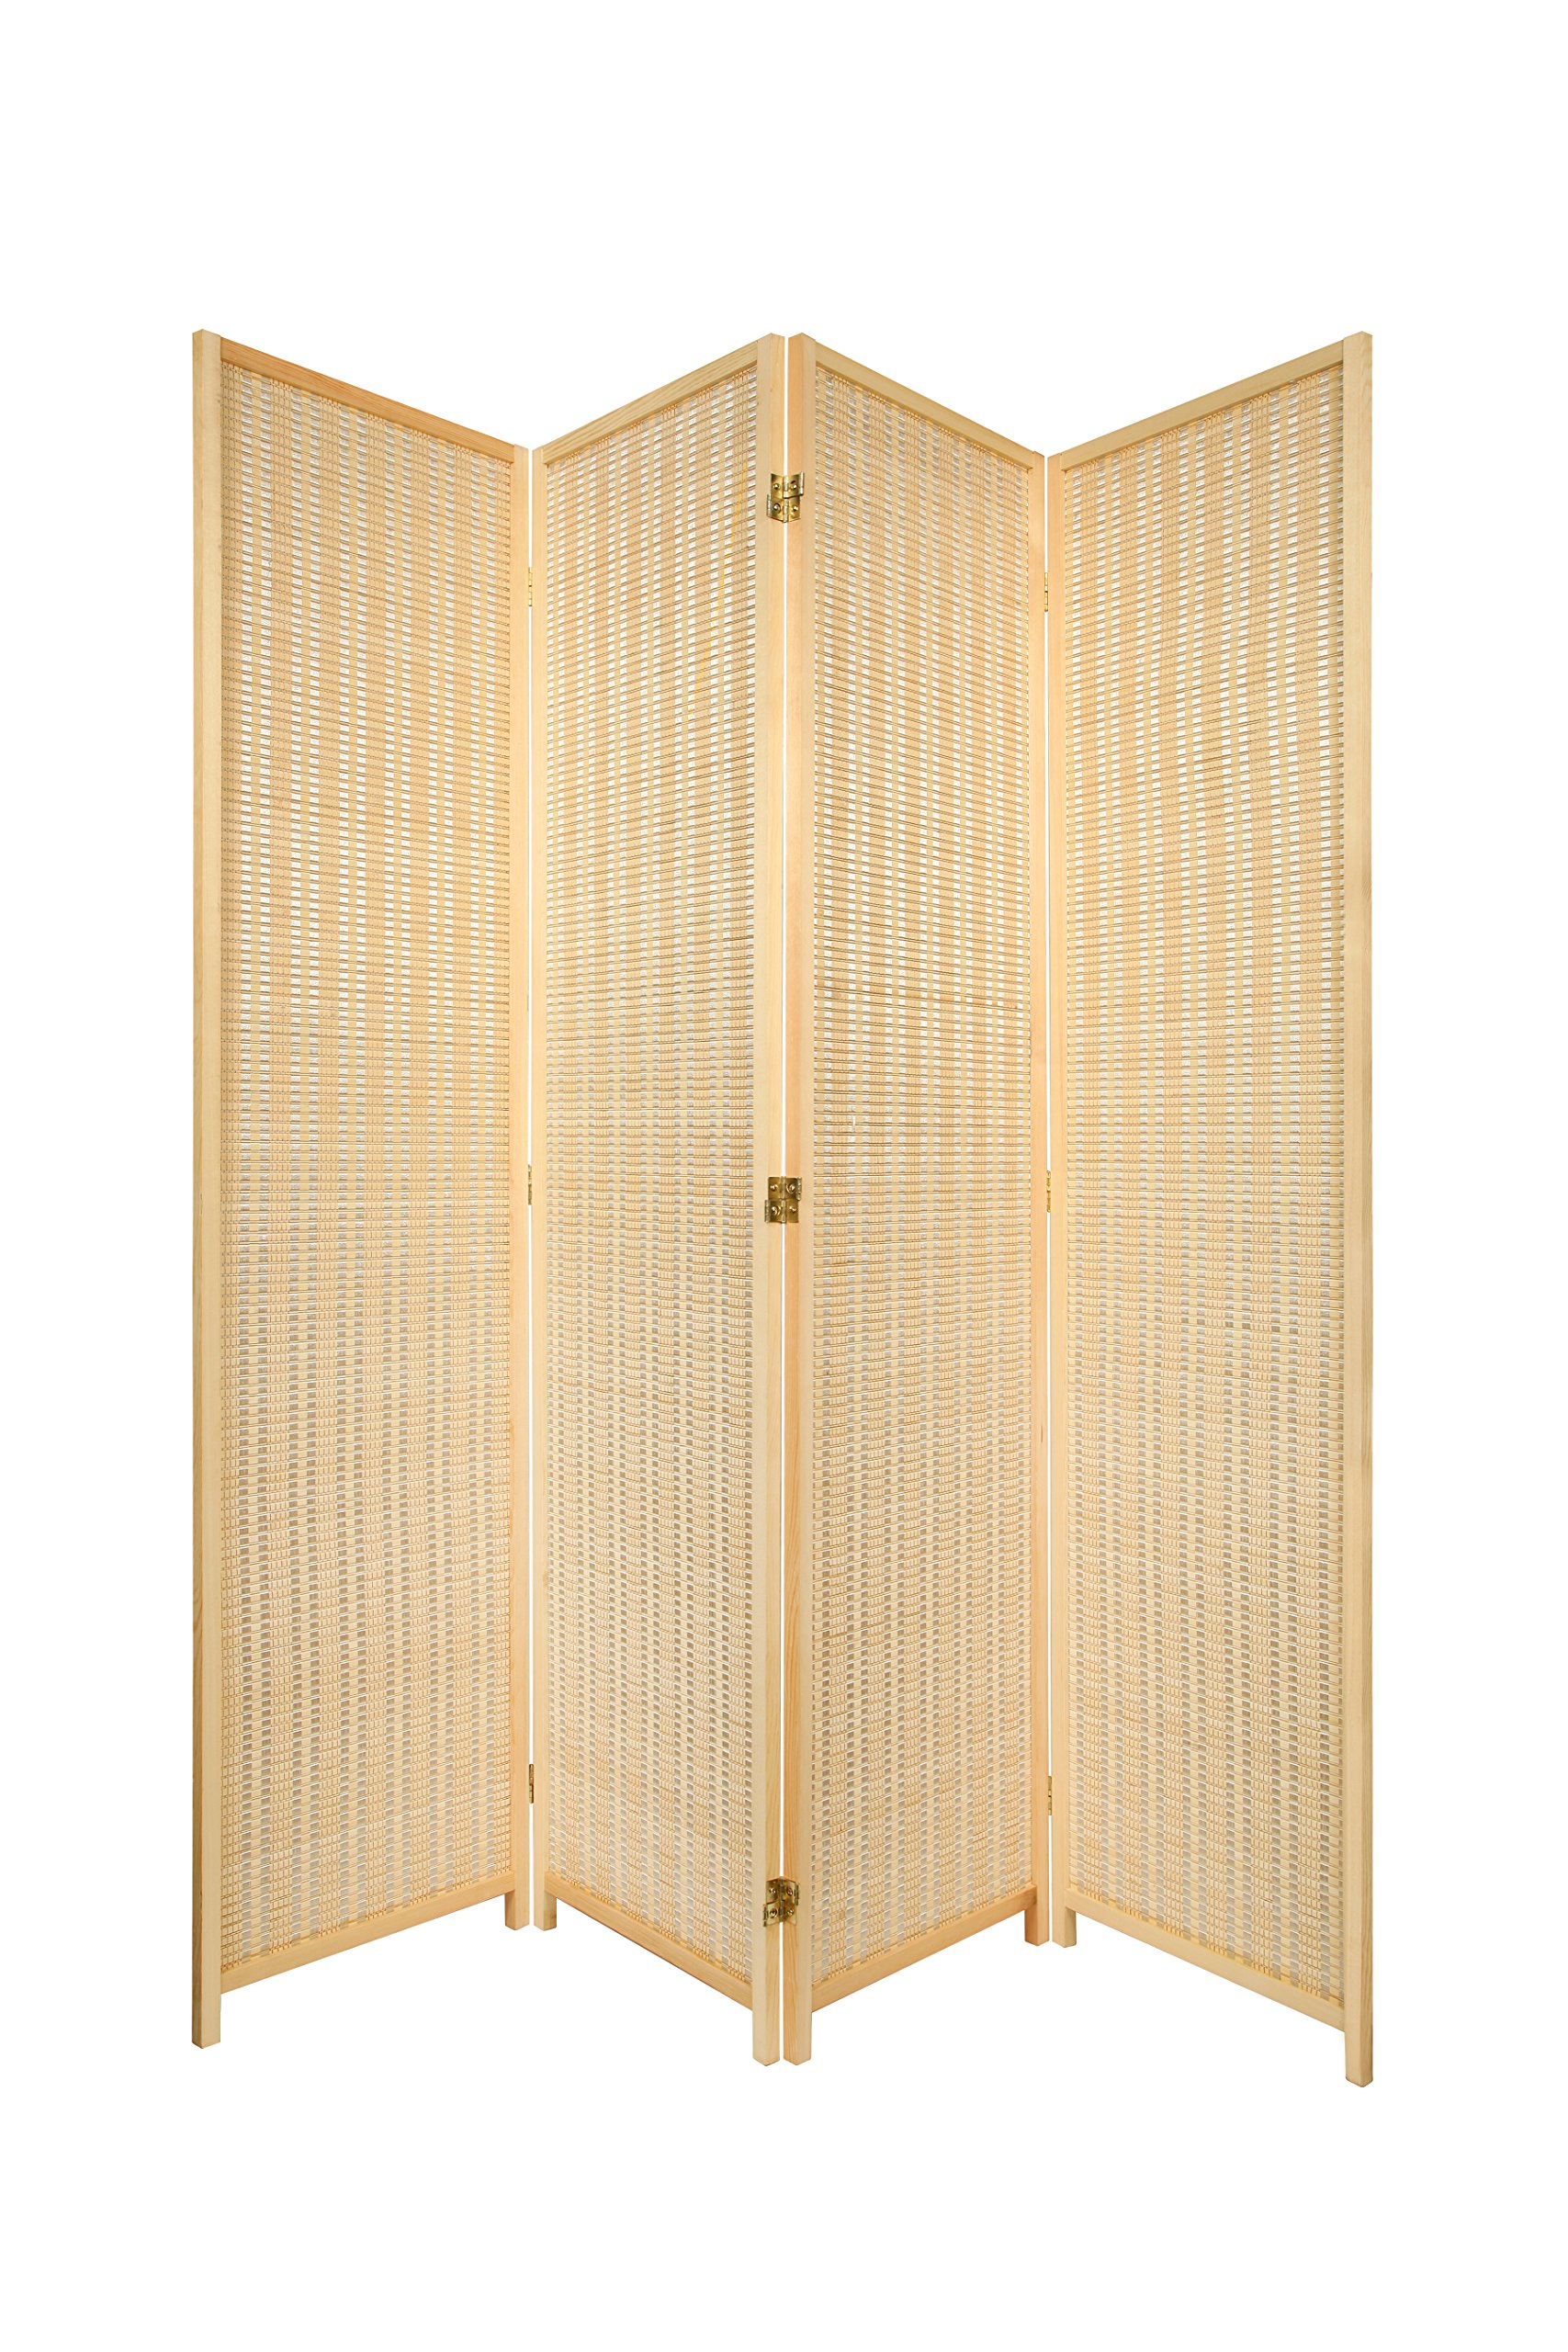 4 Panel Natural Color Wood and Bamboo Weave Room Divider Folding Screen 2-Way Double hinged, by Legacy Decor